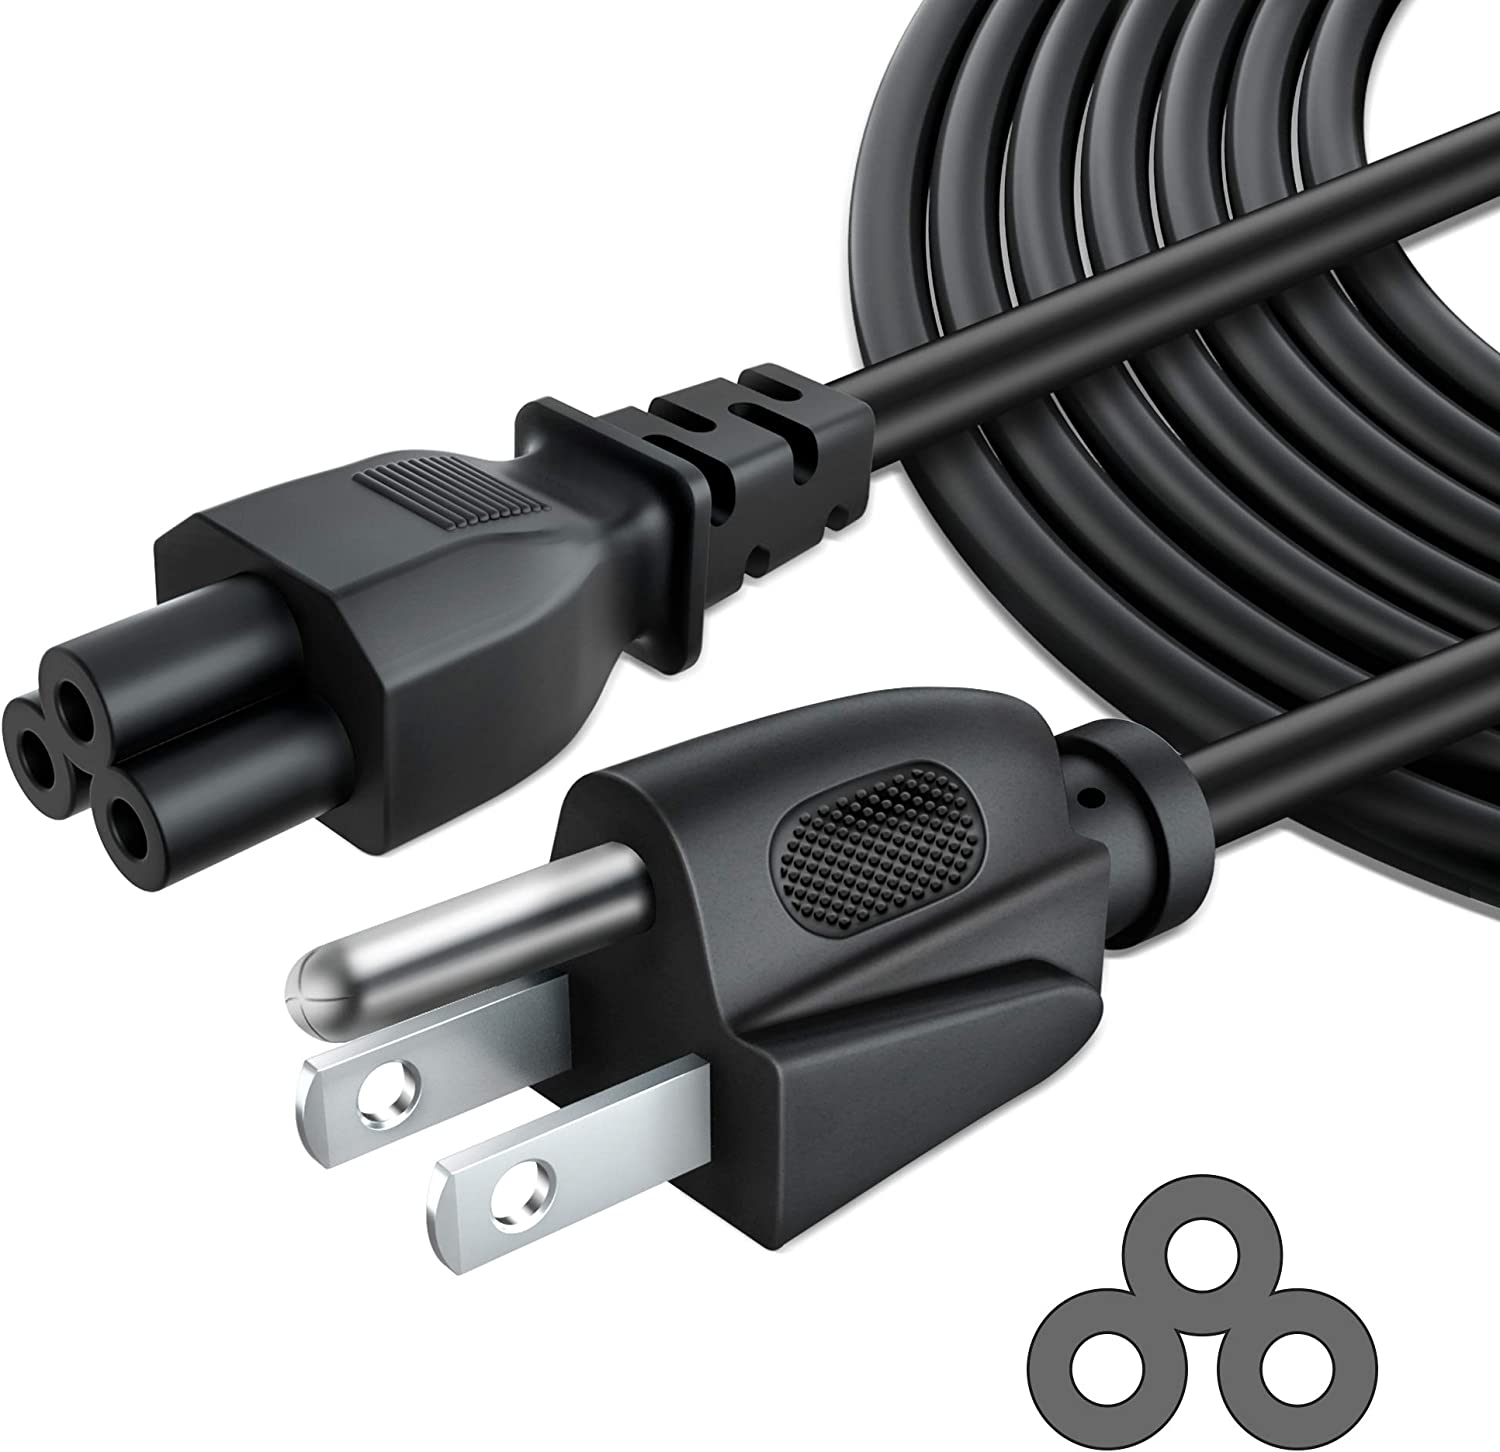 PKPOWER 6ft 3 Prong AC Laptop Power Cord Cable for Dell IBM Hp Compaq Asus Sony Toshiba Lenovo Acer Gateway MSI Notebook Laptop Computer Charger-Black